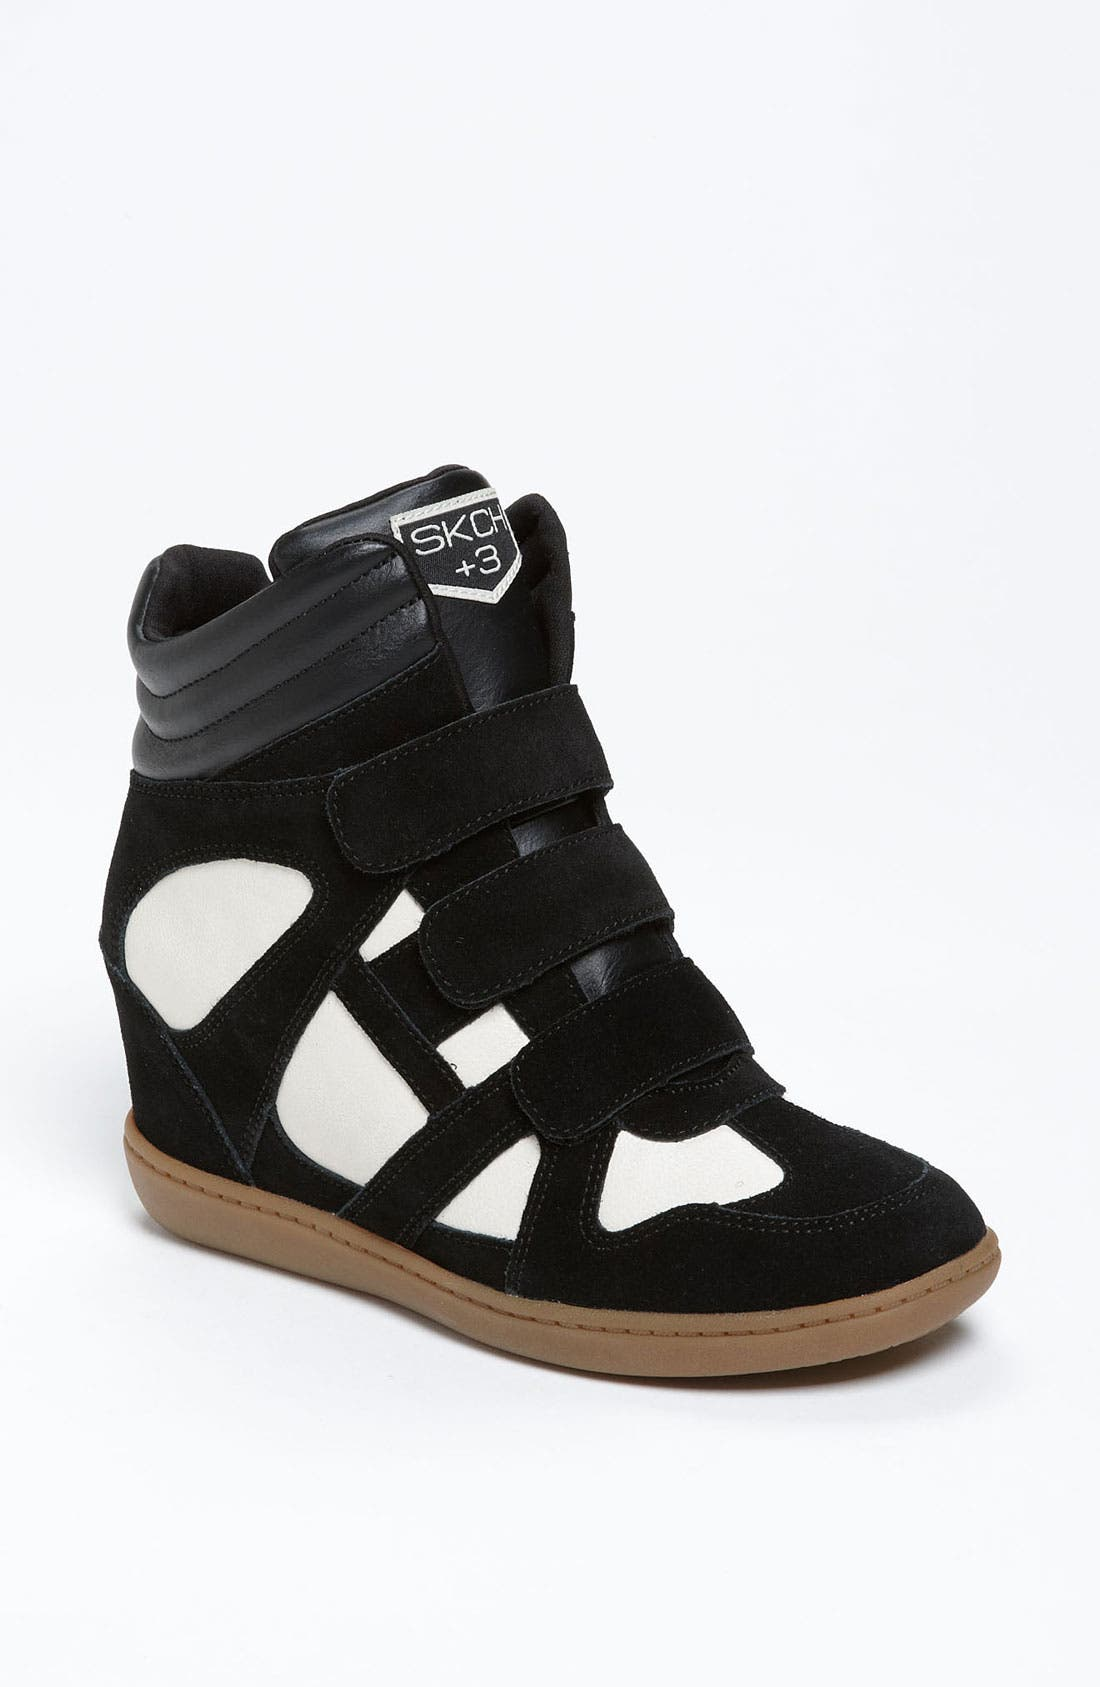 Alternate Image 1 Selected - SKECHERS 'Raise Your Glass' Wedge Sneaker (Women)